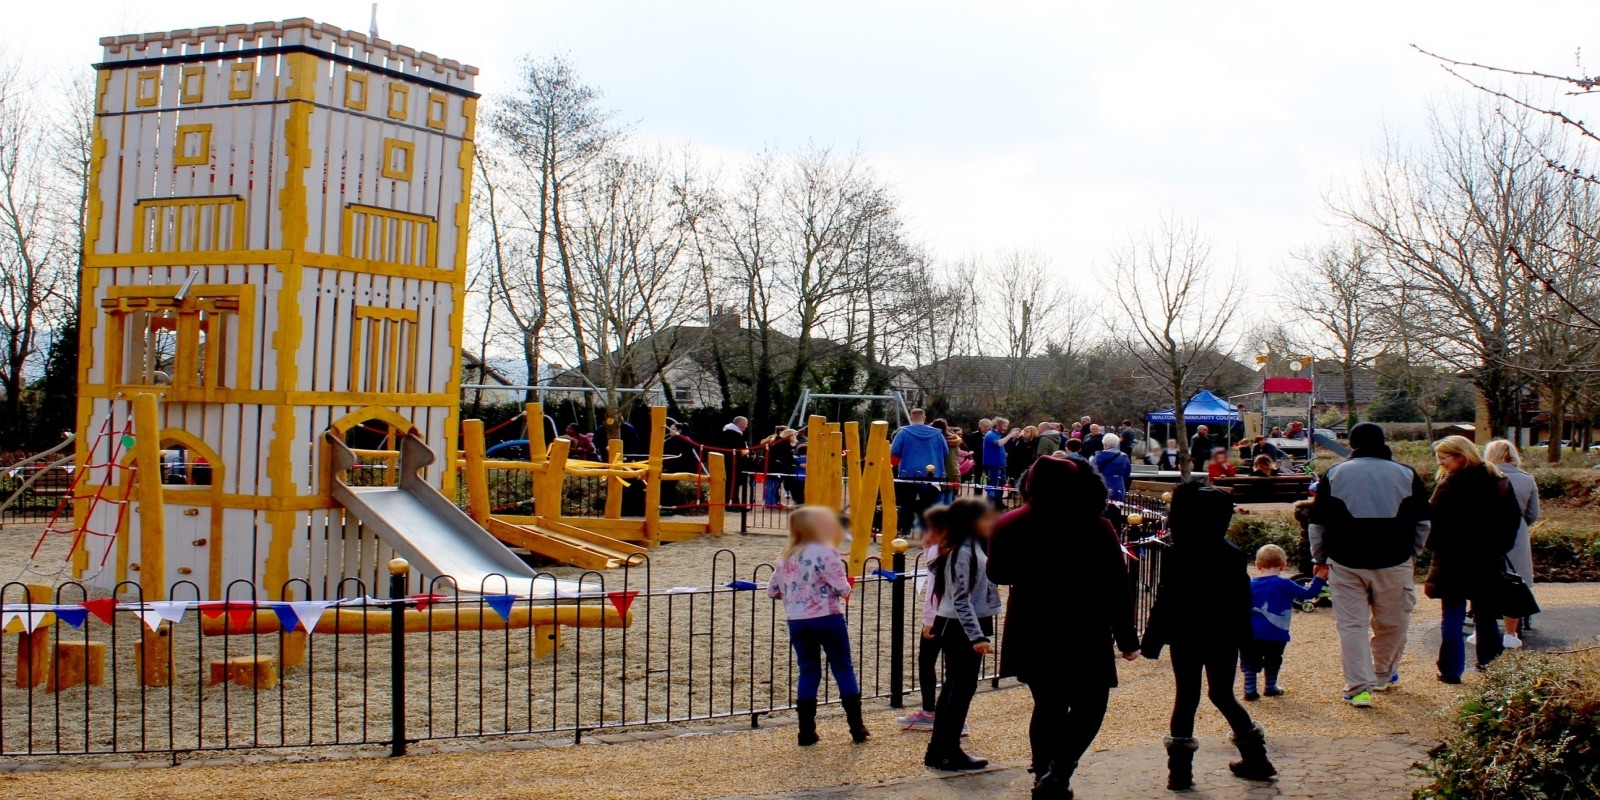 Opening Wavendon Gate Play Area